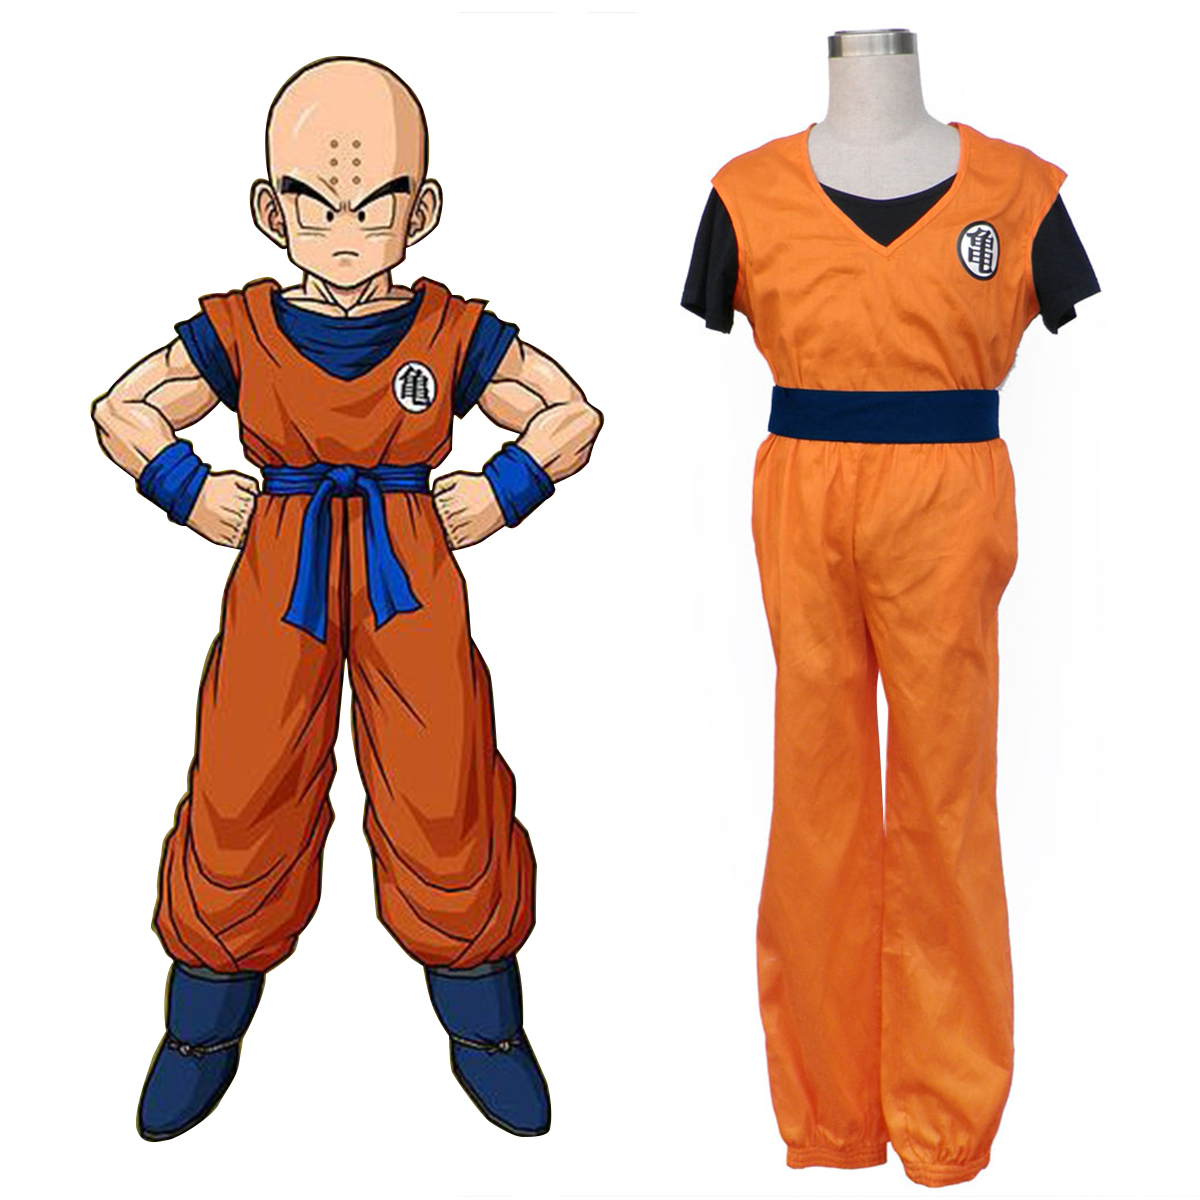 Dragon Ball Krillin Cosplay Kostym Sverige